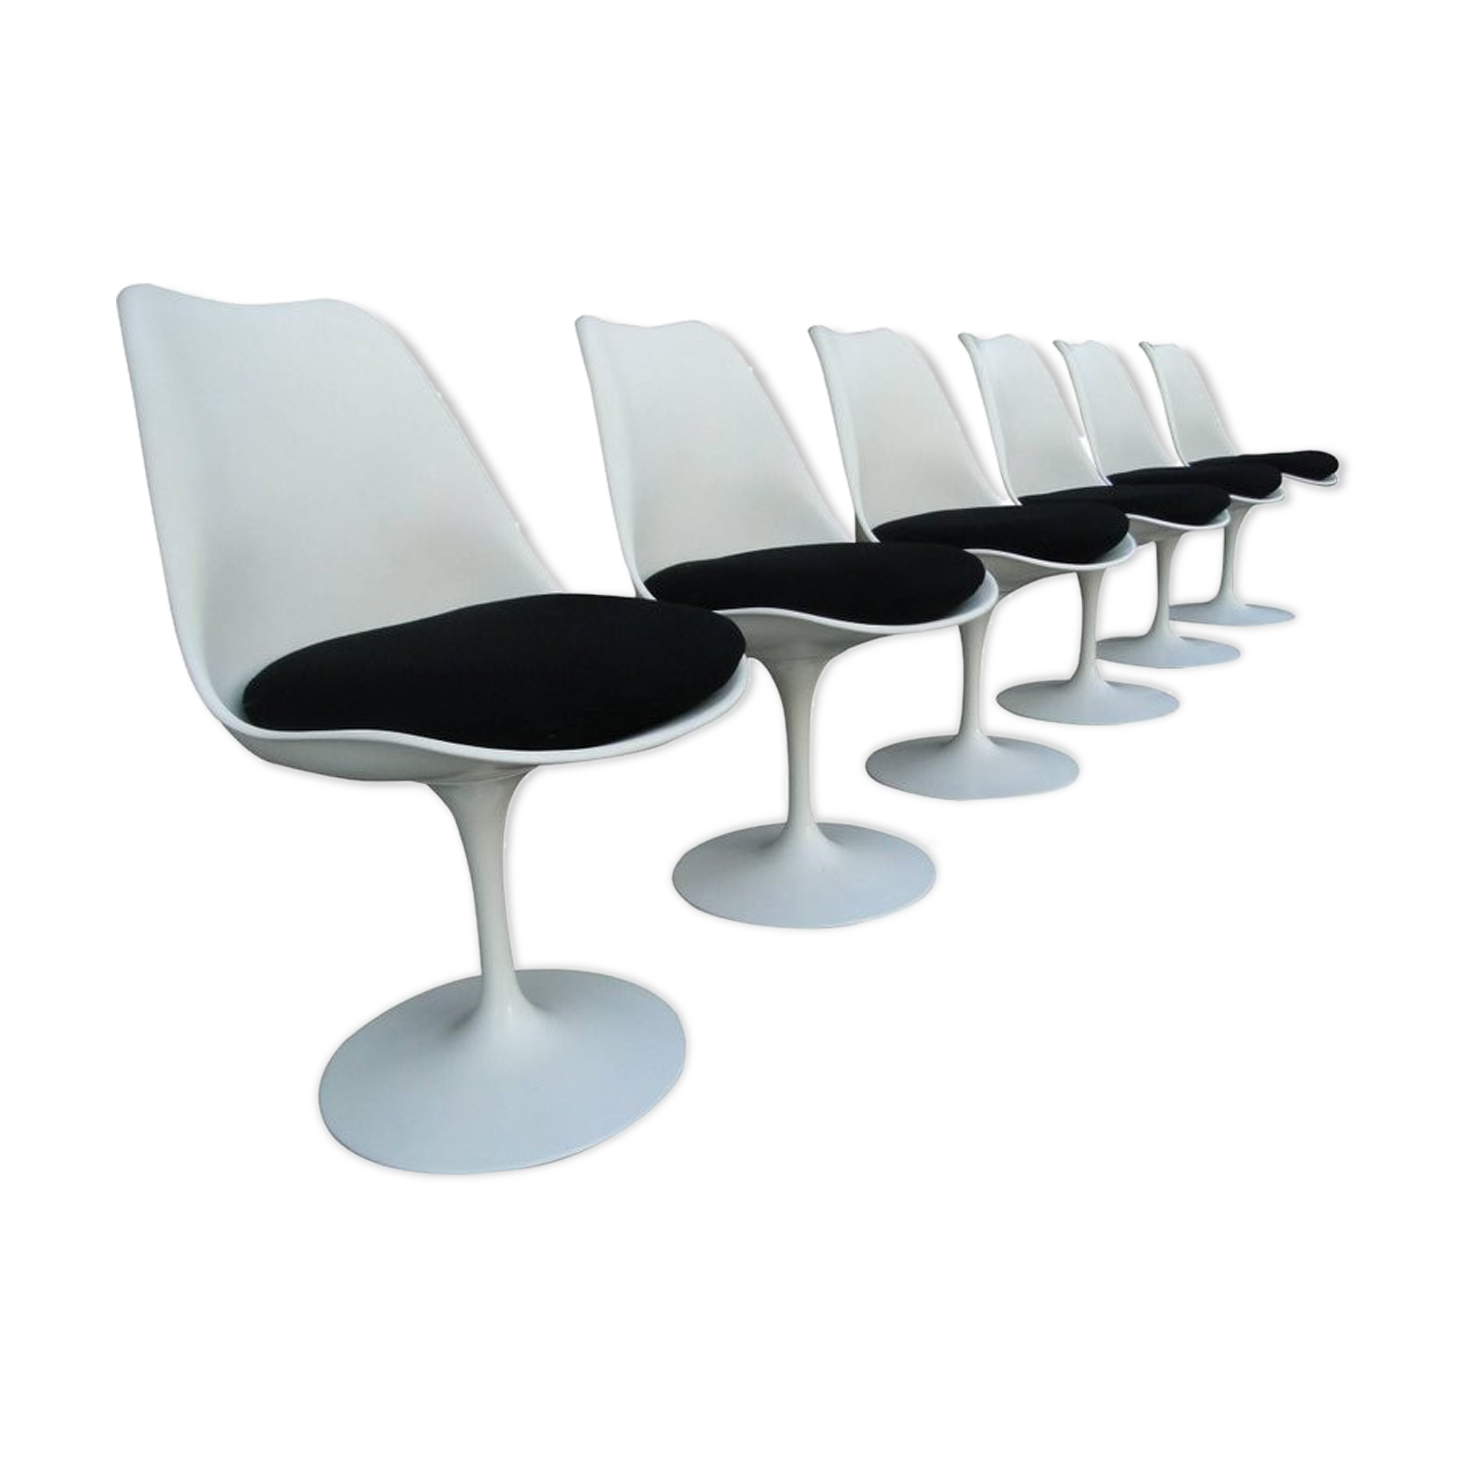 chaises saarinen beautiful chaises conference saarinen with chaise conference saarinen with. Black Bedroom Furniture Sets. Home Design Ideas